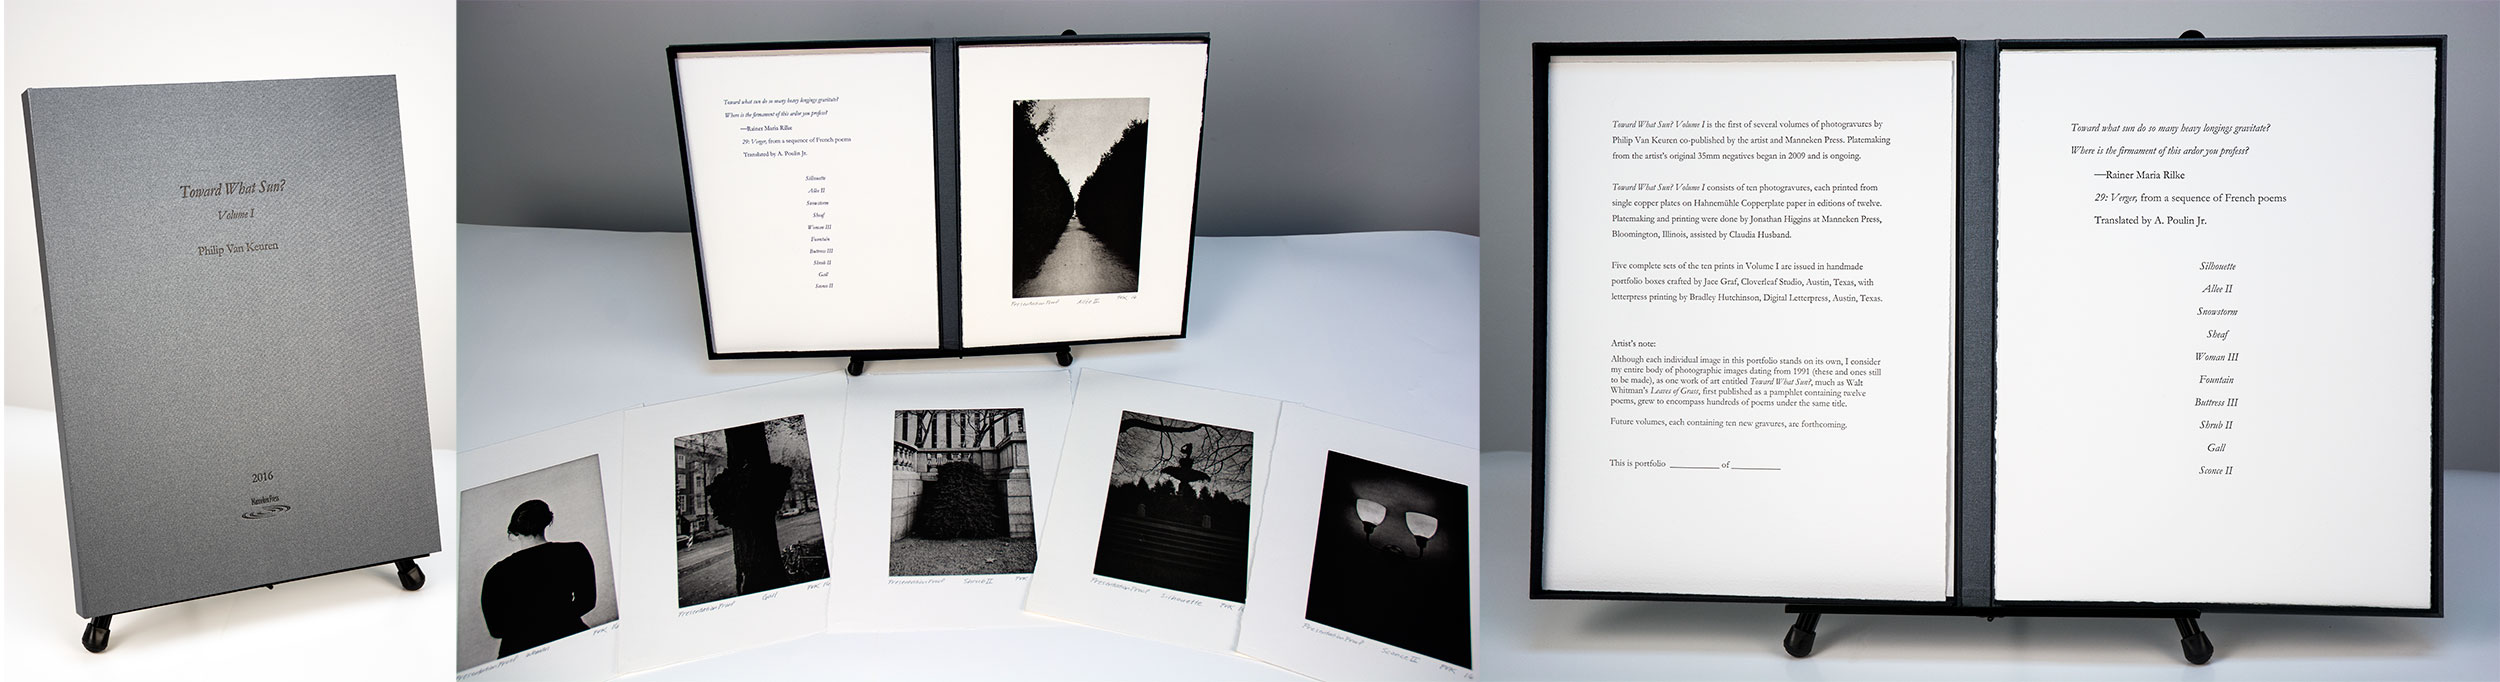 Philip Van Keuren, photogravure, Toward What Sun?, Manneken Press, portfolio